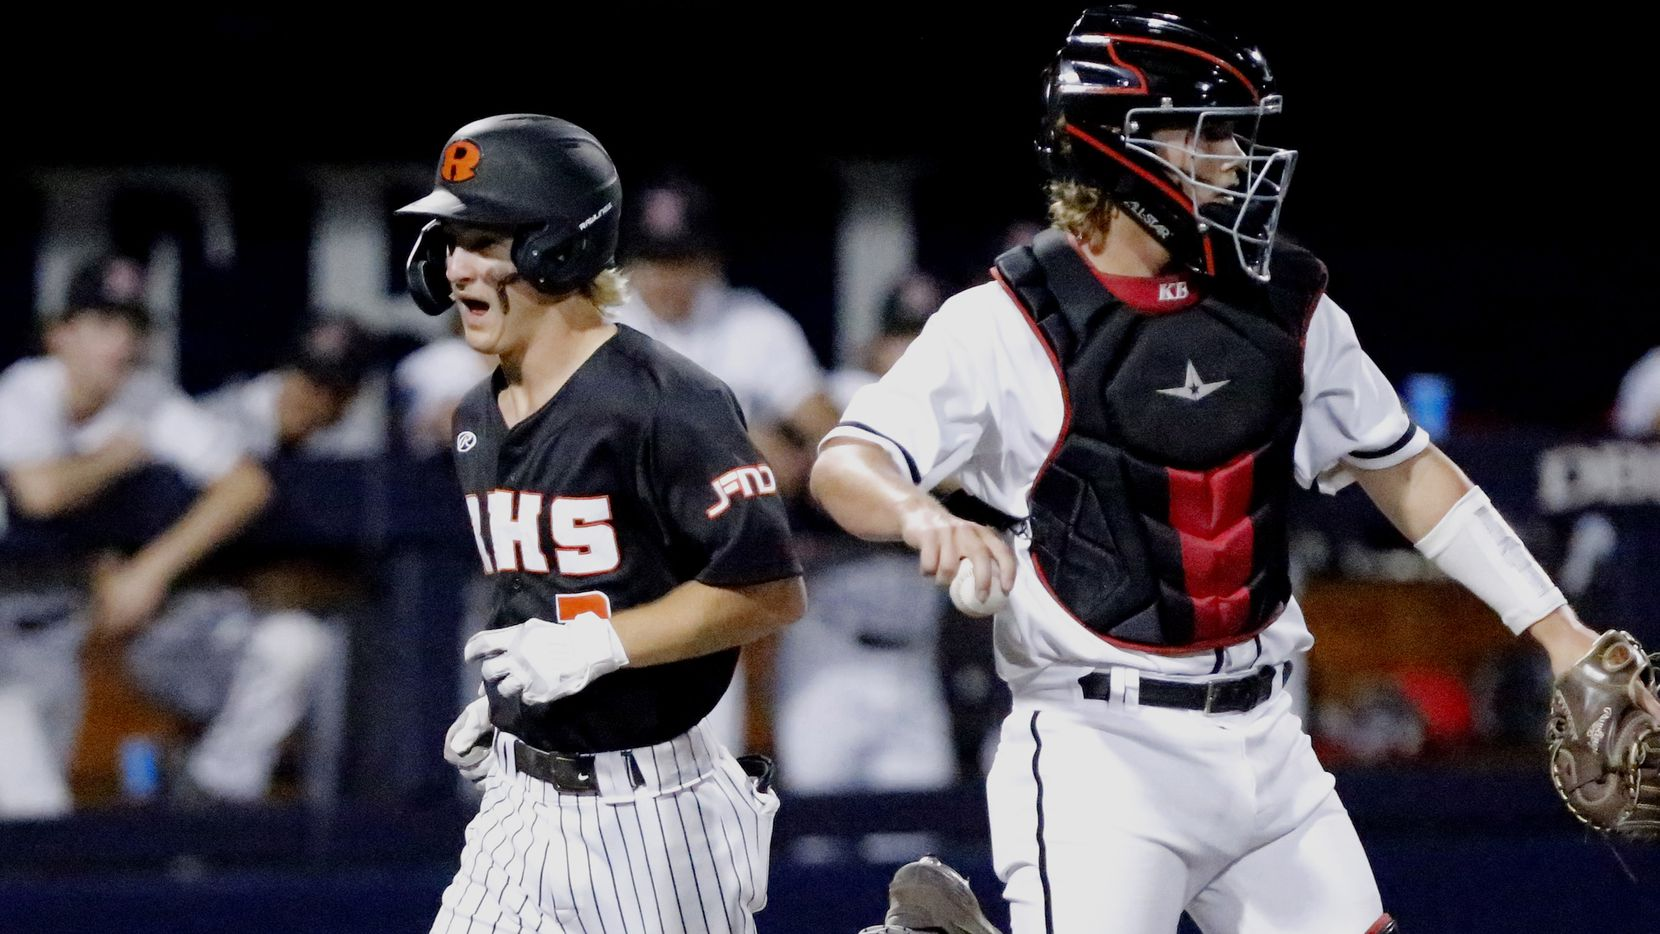 Rockwall shortstop Brayden Randle (2) scores on a bases loaded walk in the fifthl inning as Rockwall Heath High School played Rockwall High School in game one of a 6A Region II final series at Horner Ballpark in Dallas on Wednesday, June 2, 2021.